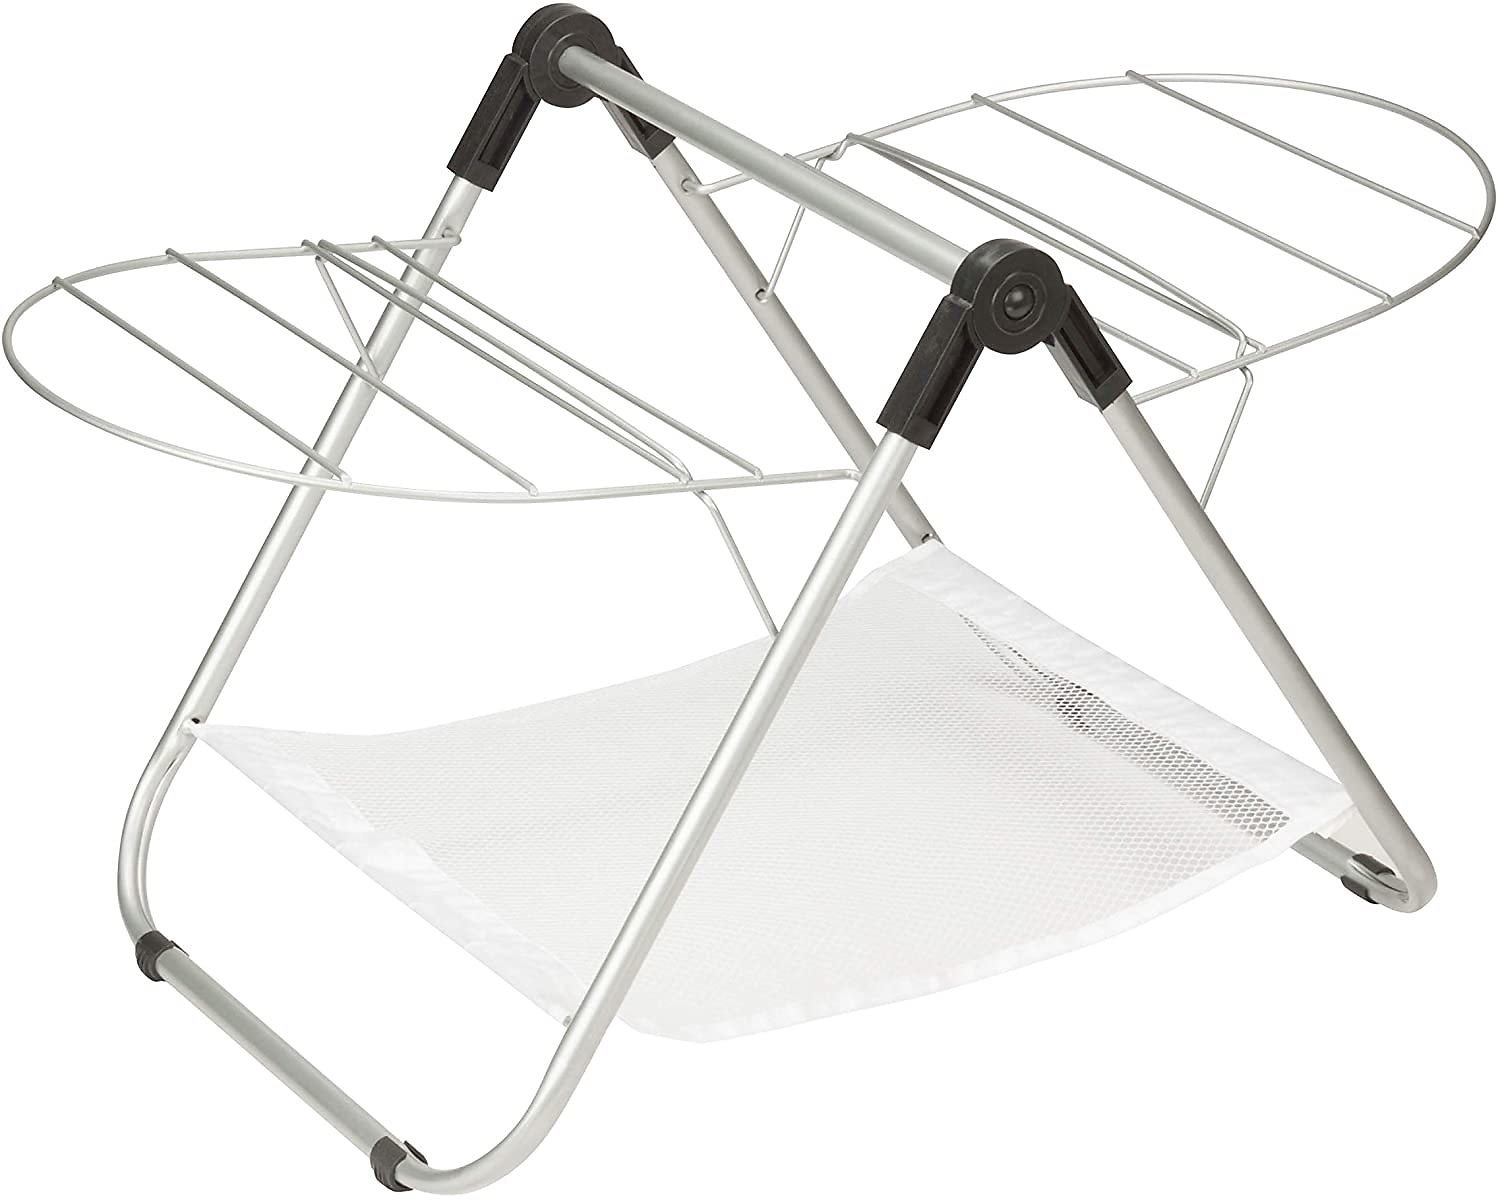 Honey-Can-Do 16.9 Inch X 29 Inch Tabletop Gullwing Drying Rack for $16.90